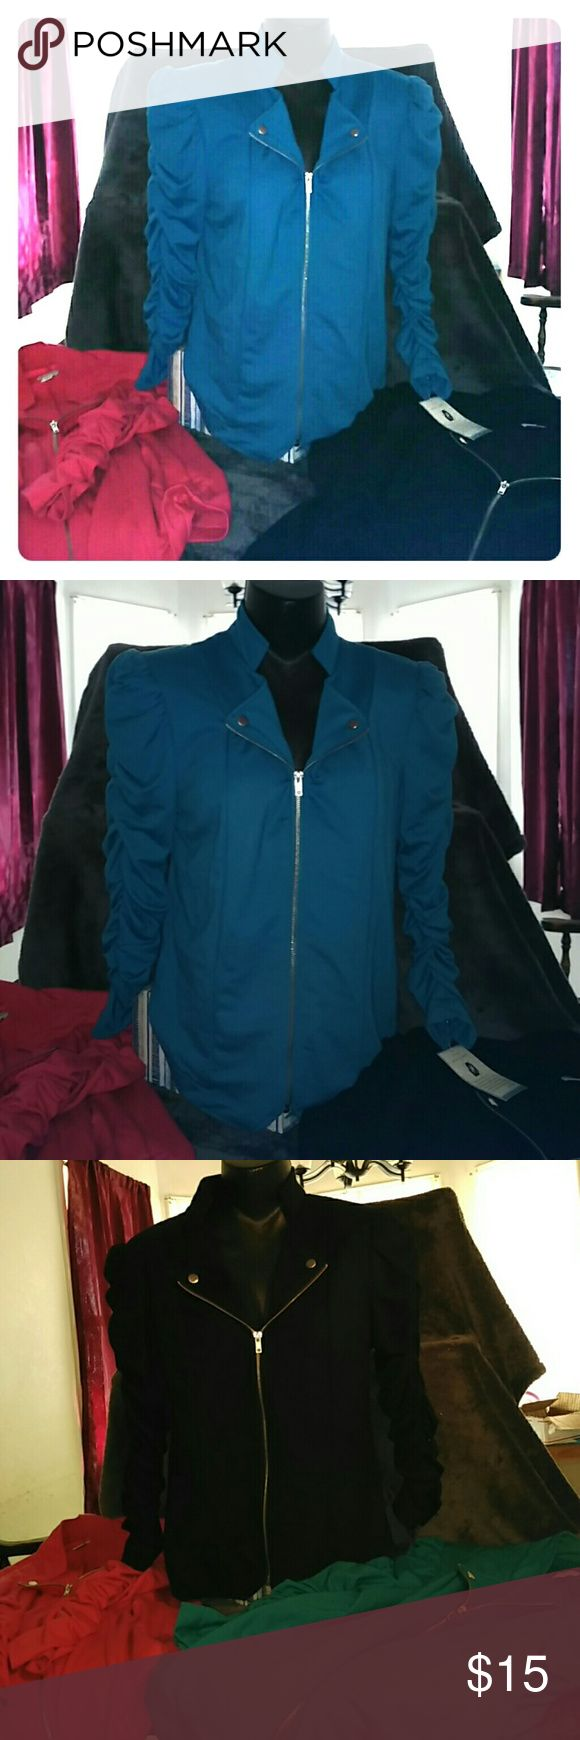 Set of 3 large zippered tops These look great with skinny jeans and boots! I've worn the black and red one a couple of times. The teal one still has tags. Scrunchy sleeves. Light shoulder pads. Zippered front. Silver detail. Tops Blouses